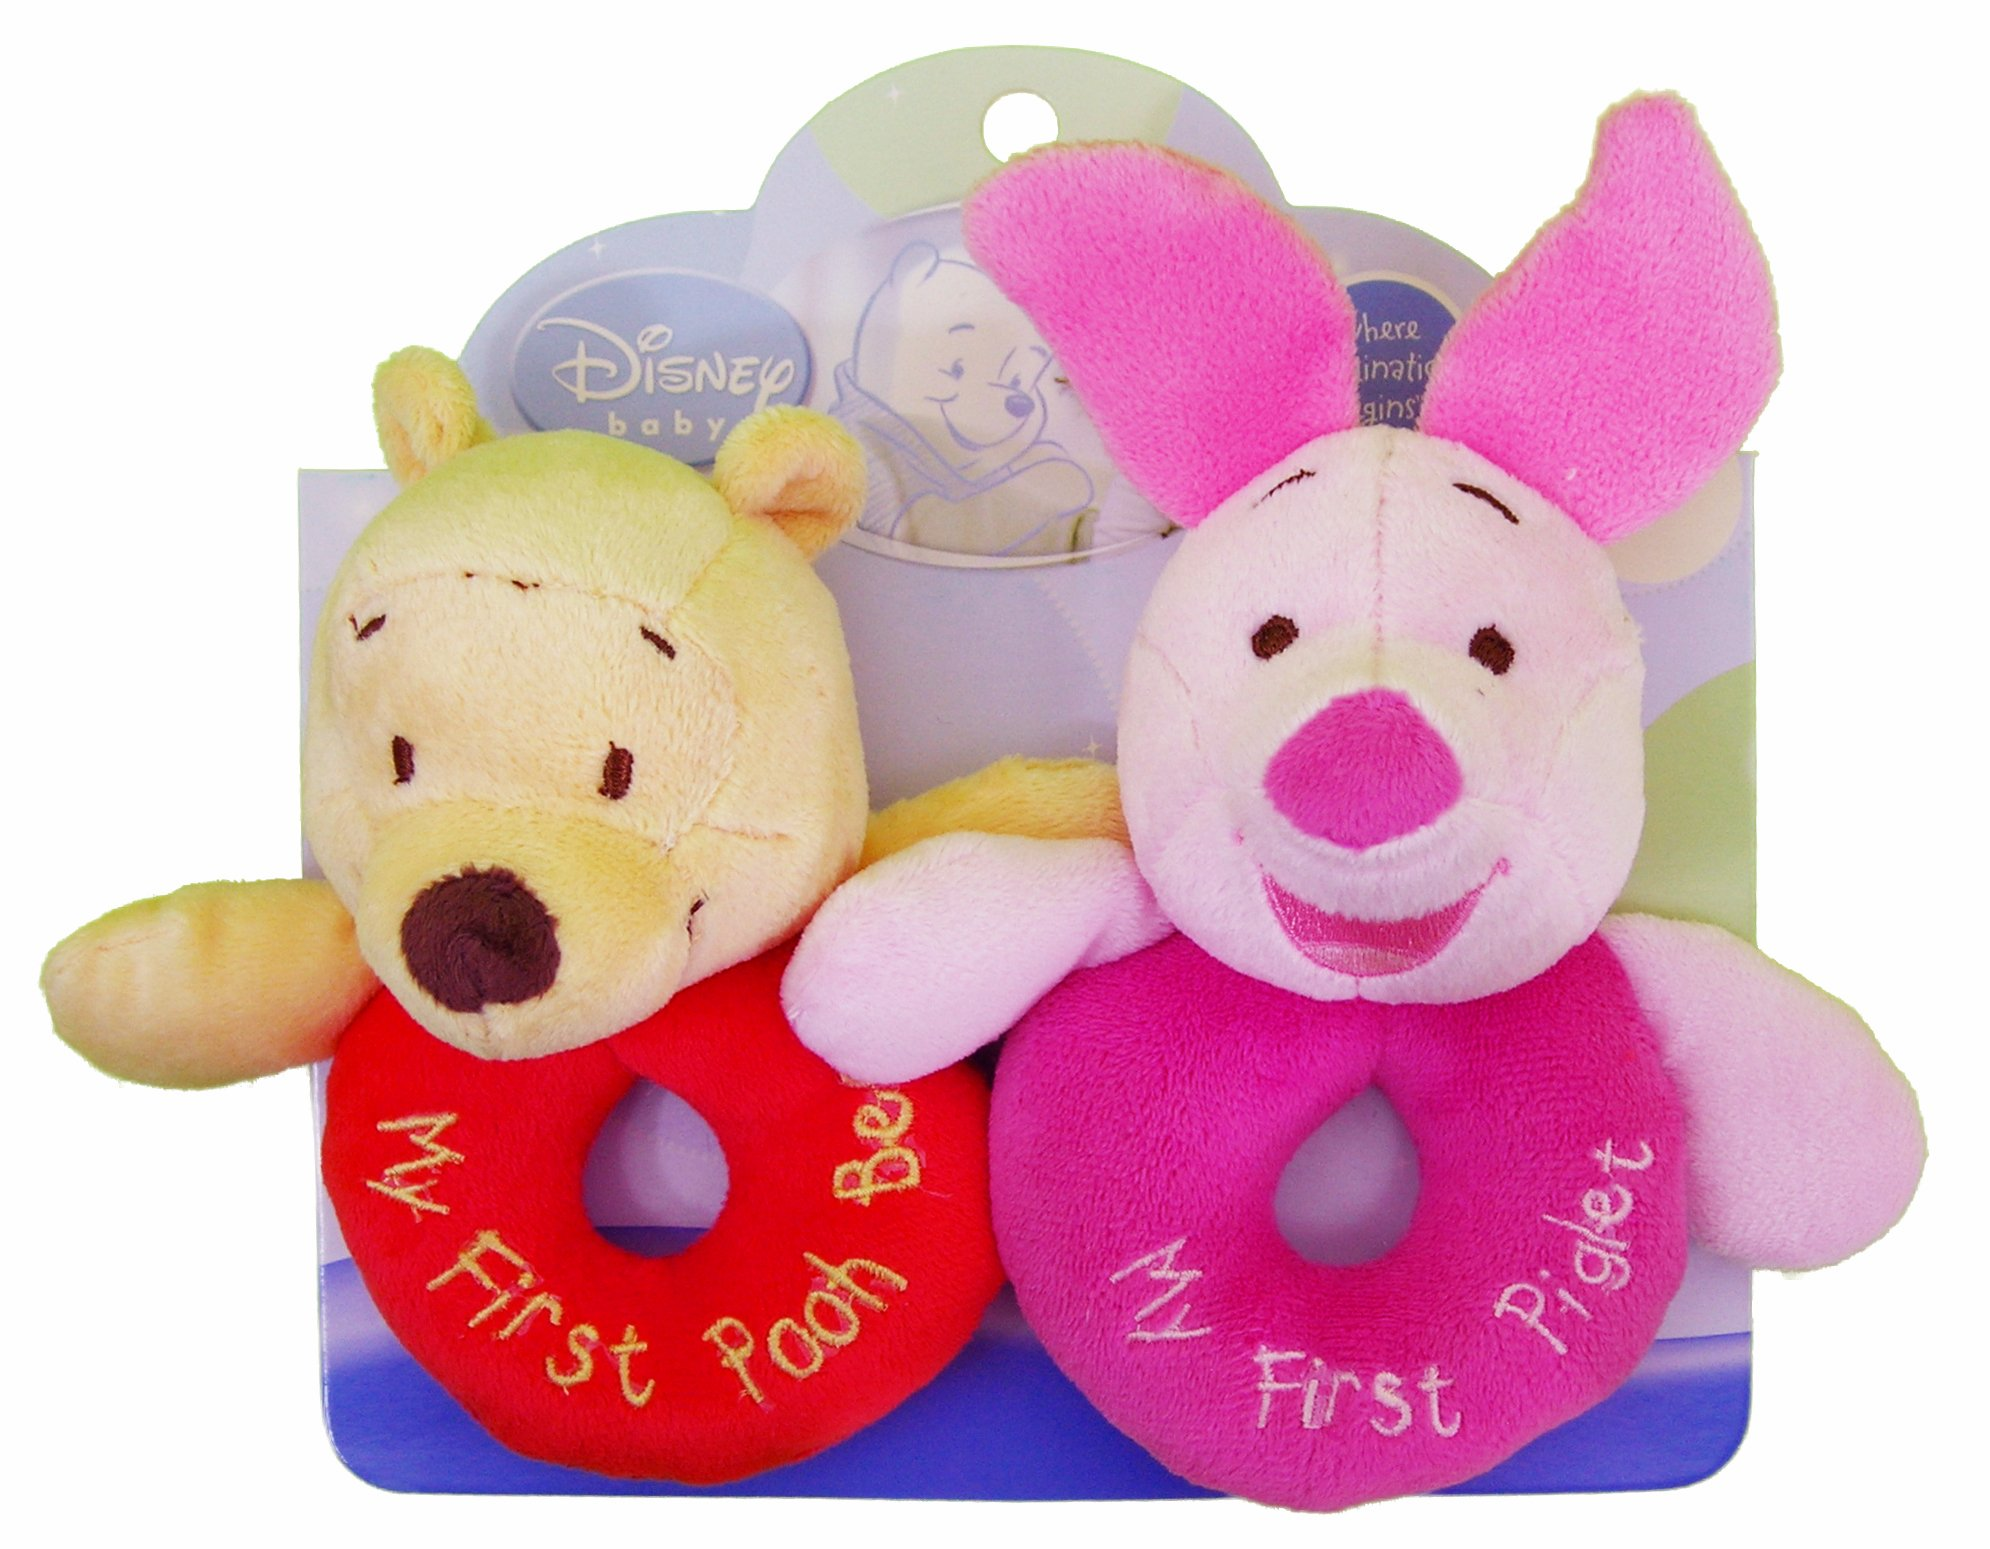 Kids Preferred Disney Baby, Plush Ring Rattles - Winnie the Pooh and Piglet